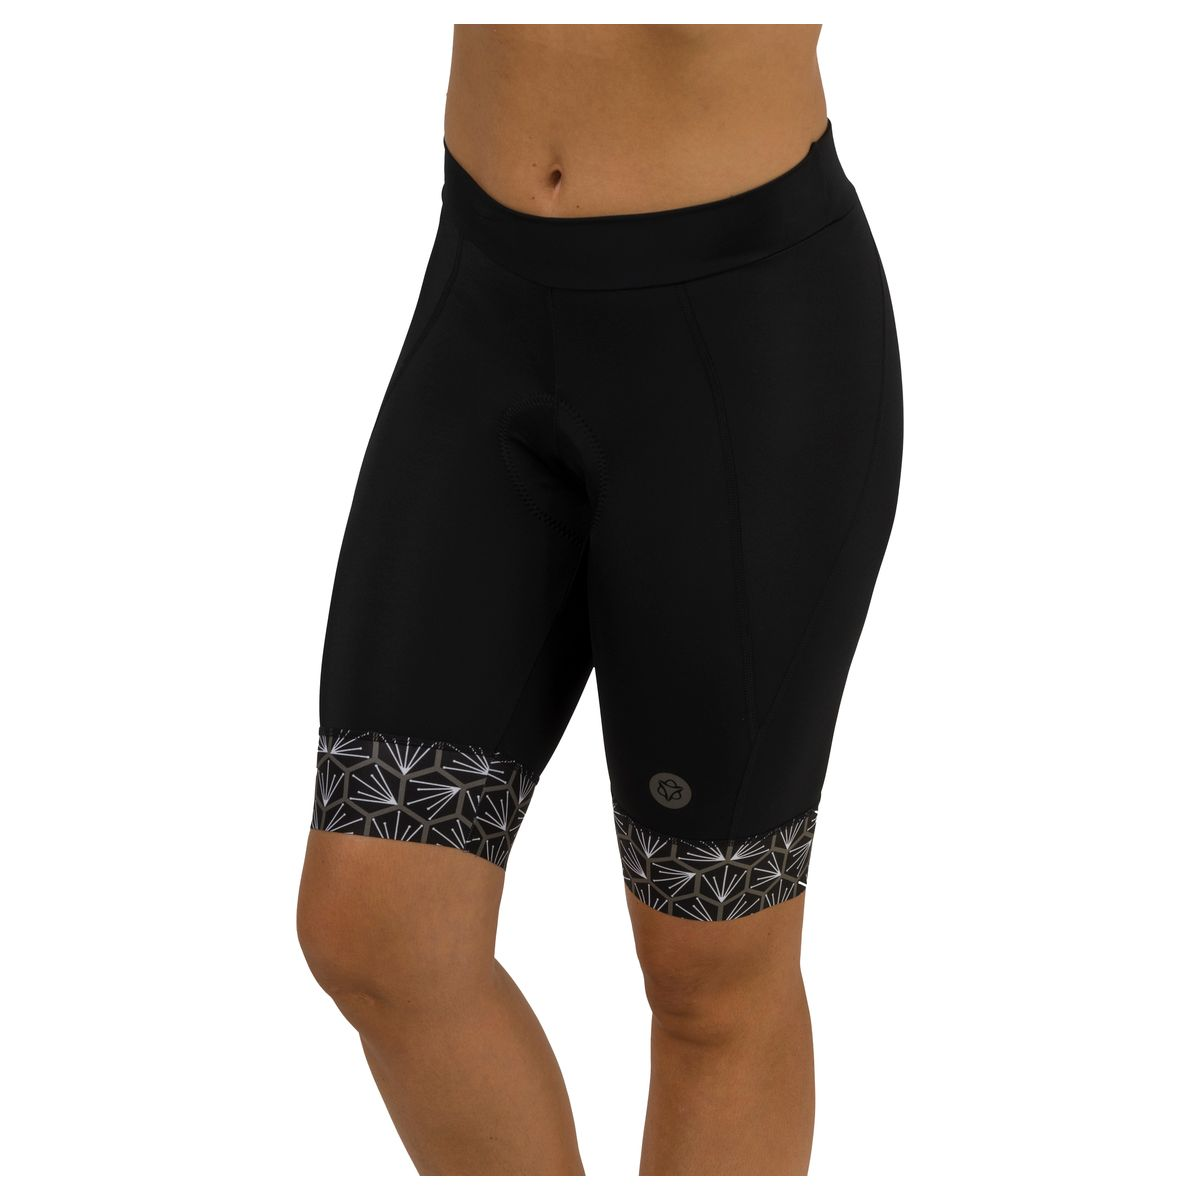 Tile Prime Radhose Trend Damen fit example